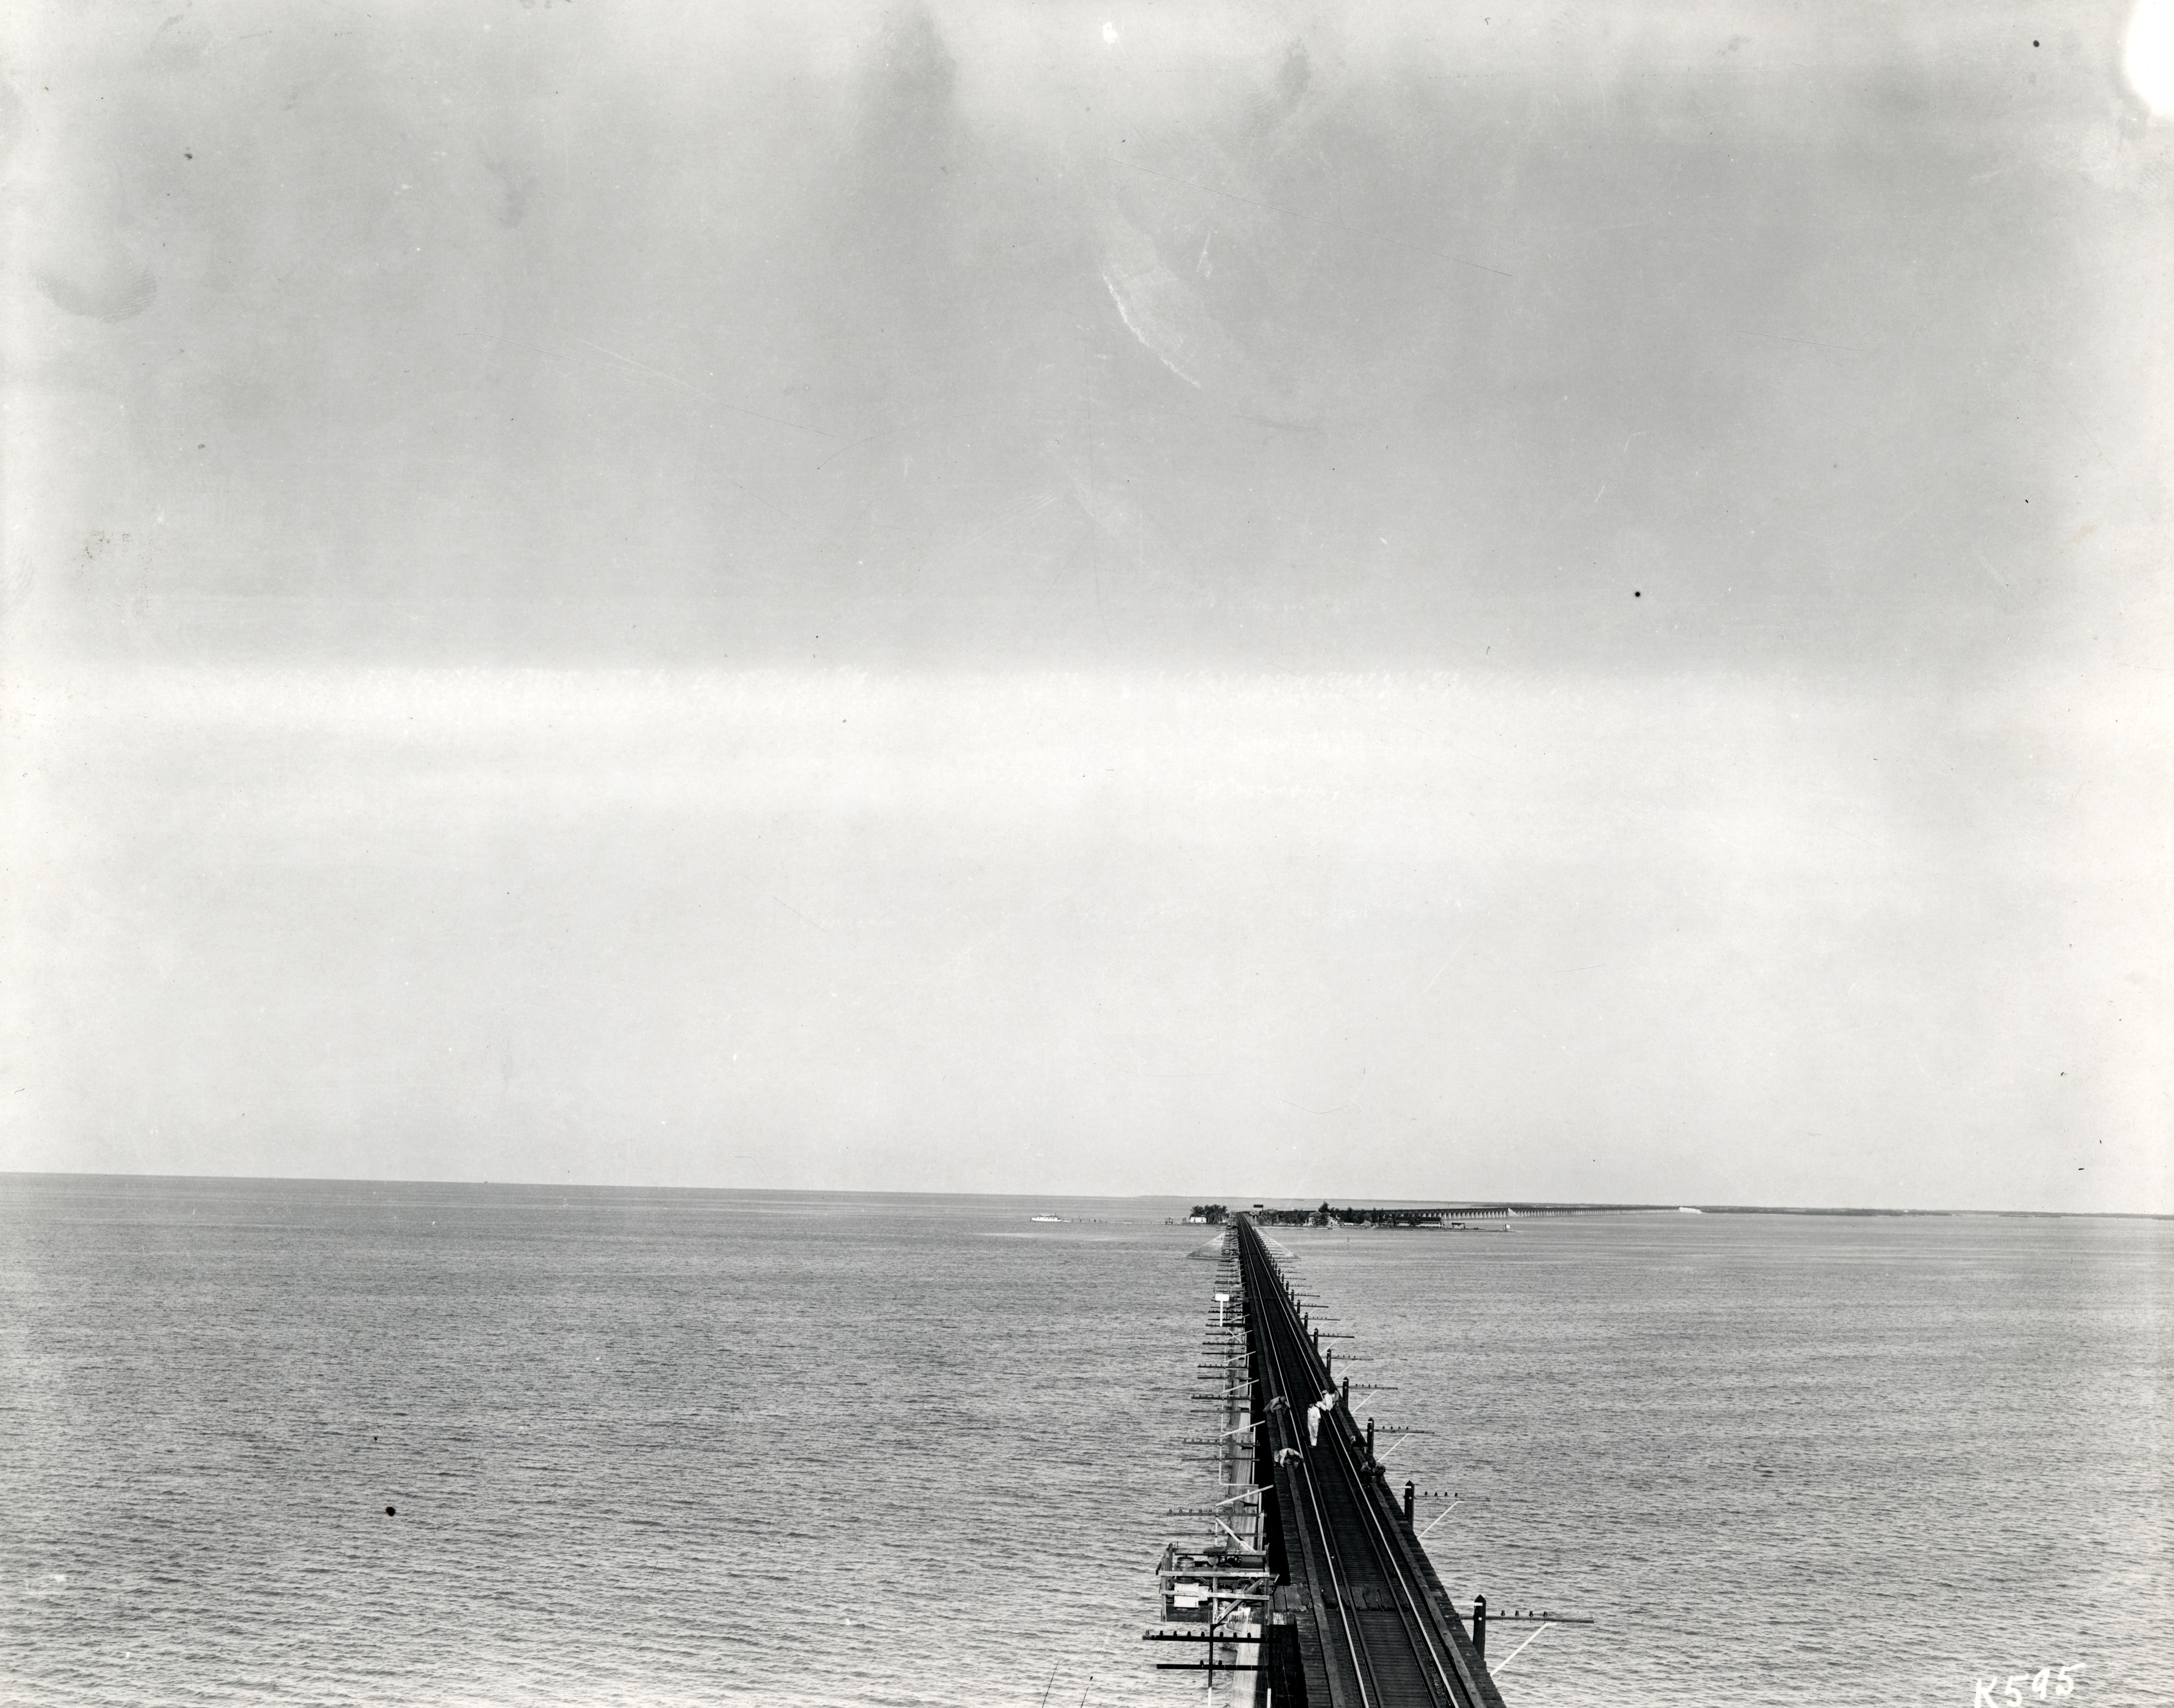 Florida East Coast Railway, Key West Extension. Seven Mile Bridge. Gift of Ramon Davis. Retrieved from the Florida Keys Public Library.